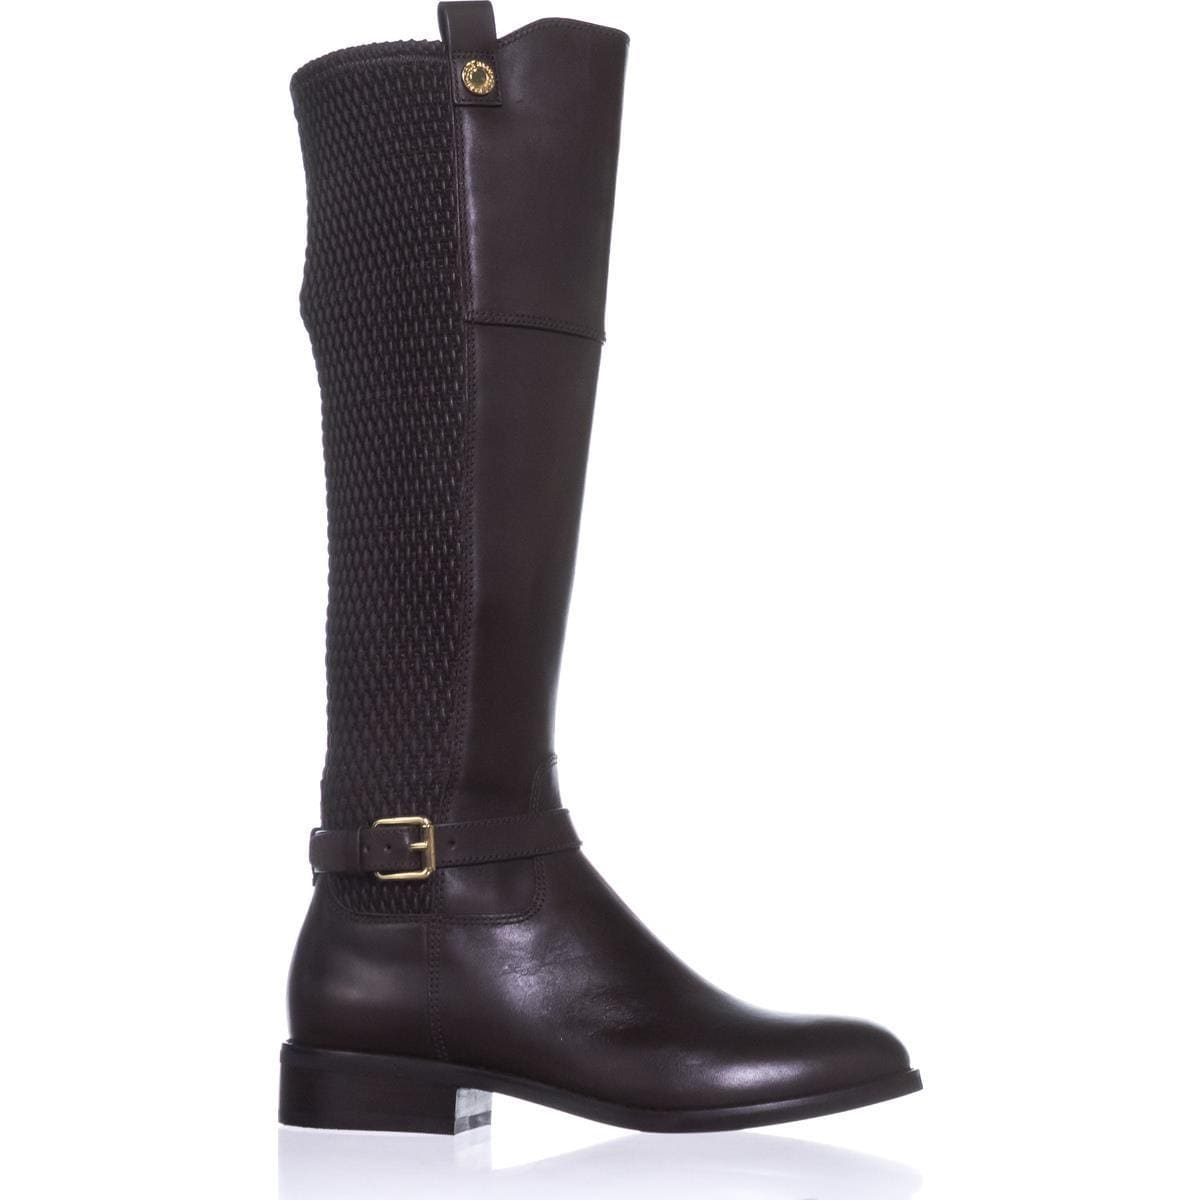 62e63a8dff6 Shop Cole Haan Galina Boot Riding Boots